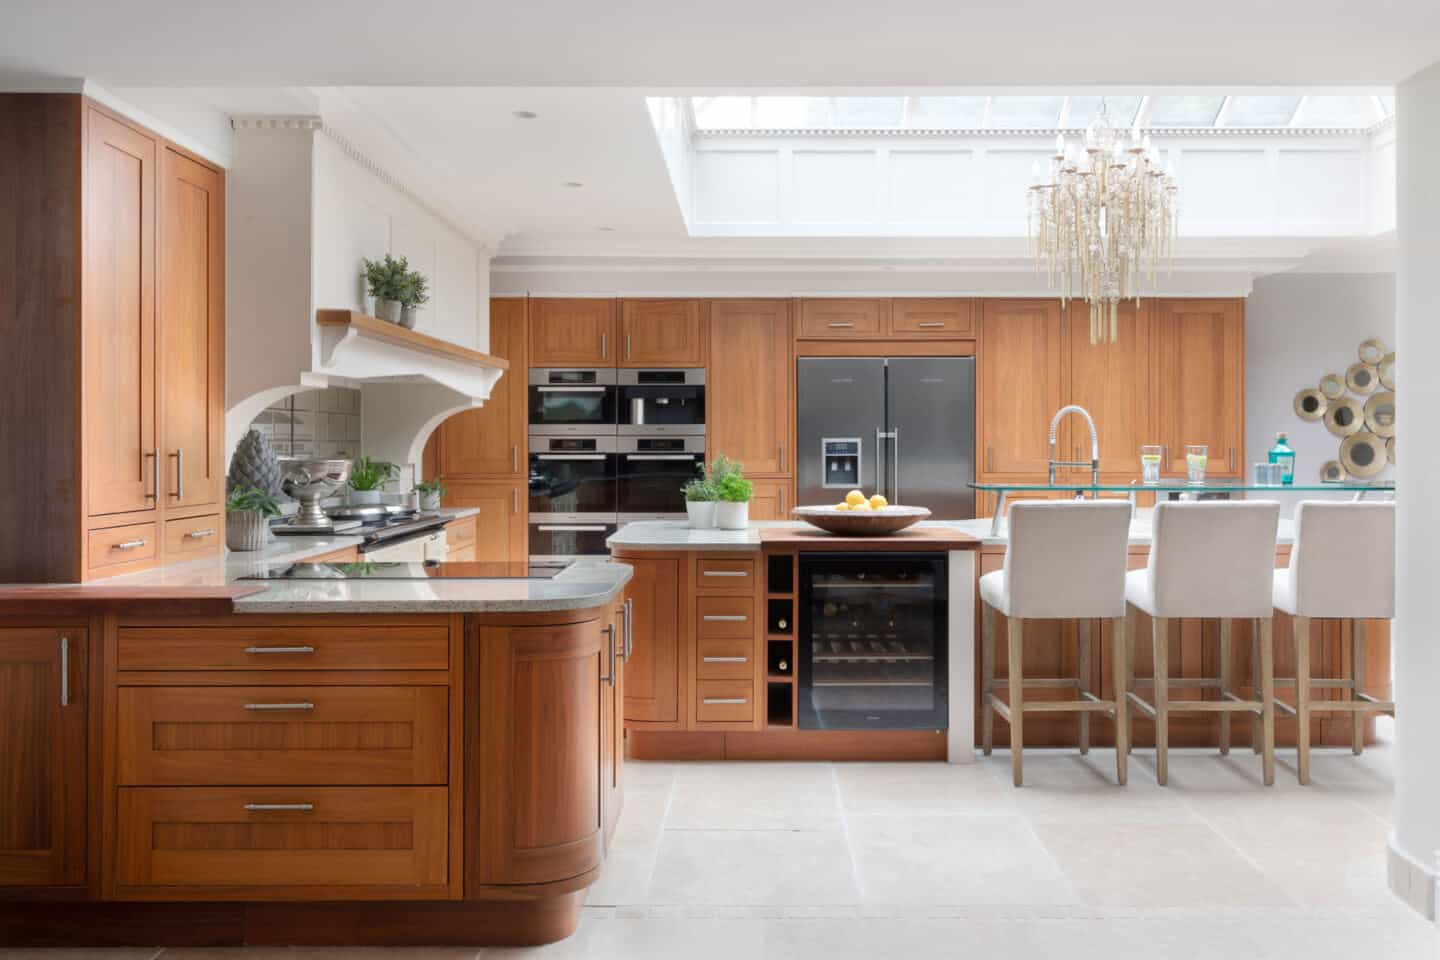 How to get your dream kitchen on a budget.  Pre-loved walnut kitchen from used kitchen exchange